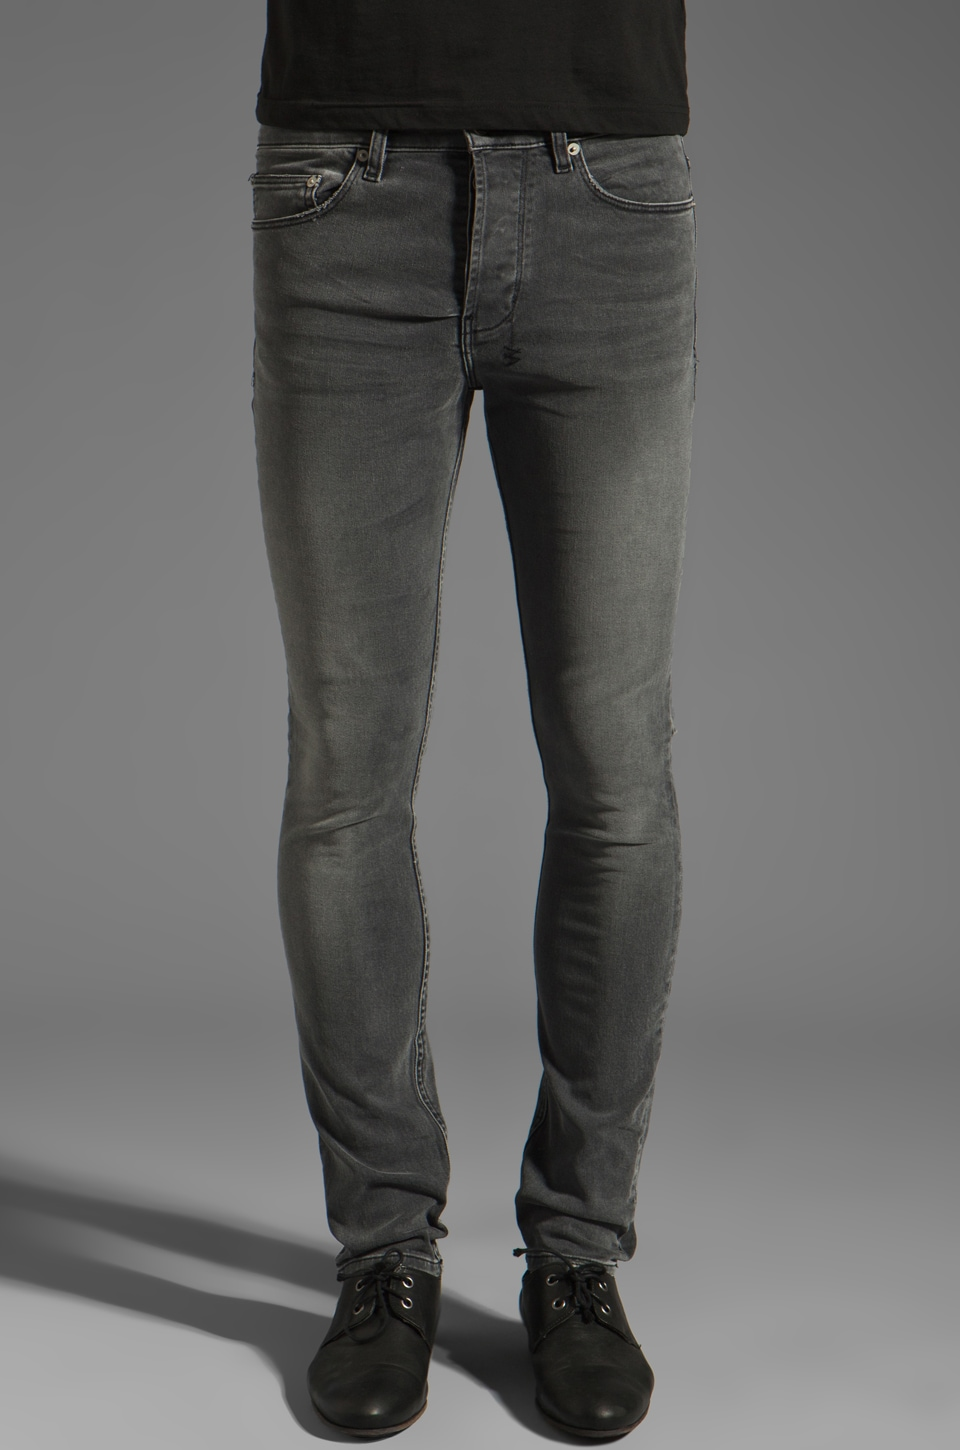 Ksubi Chitch Jeans in Dark Age